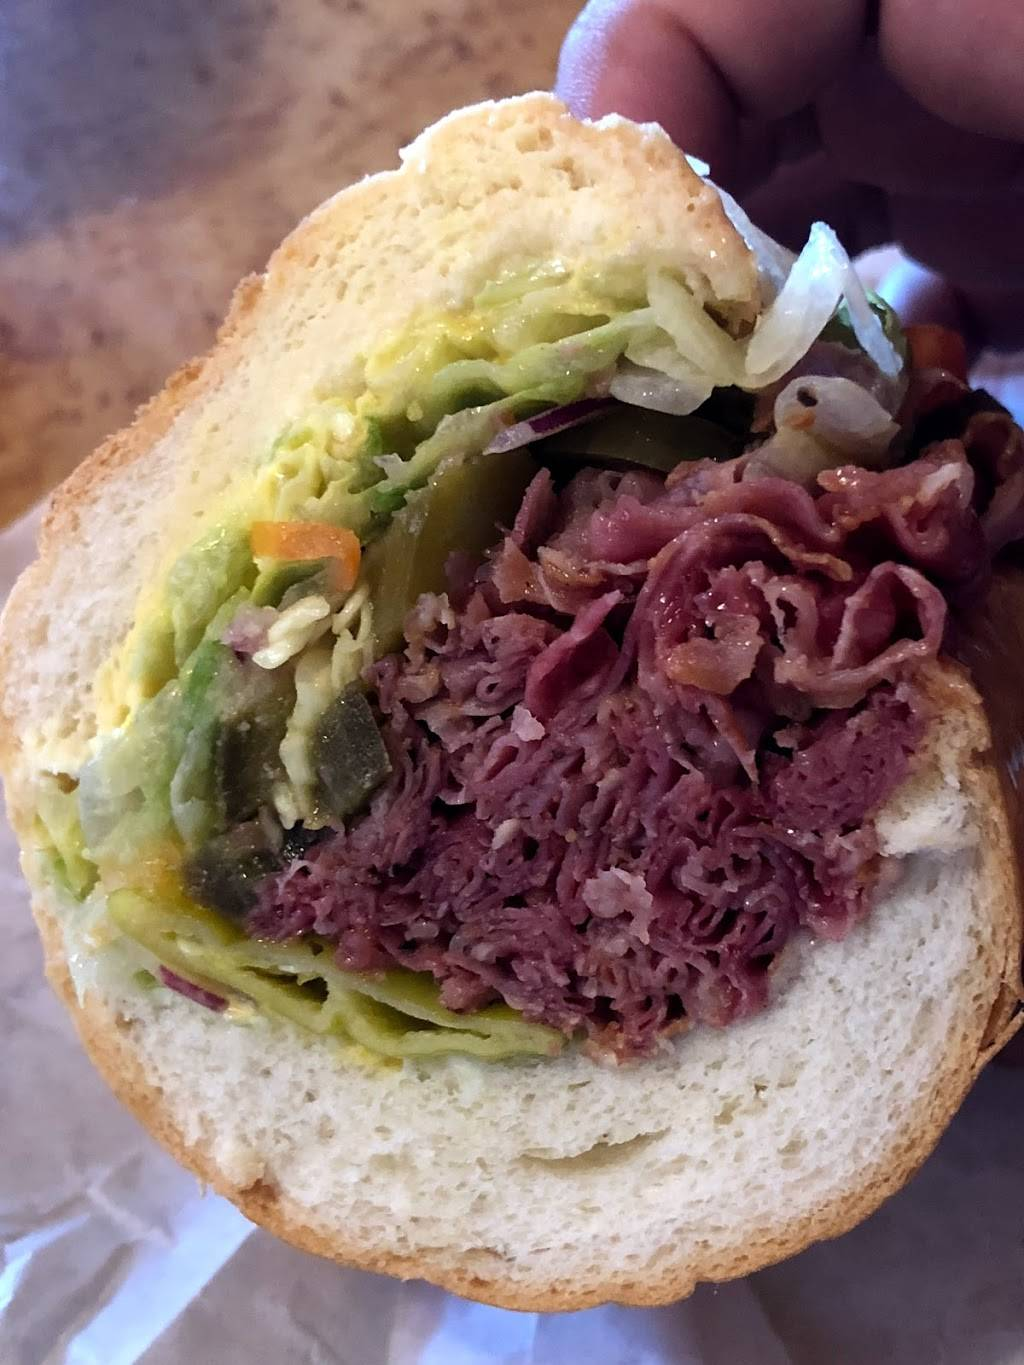 TOGOS Sandwiches | meal takeaway | 1356 Fitzgerald Dr, Pinole, CA 94564, USA | 5102229991 OR +1 510-222-9991